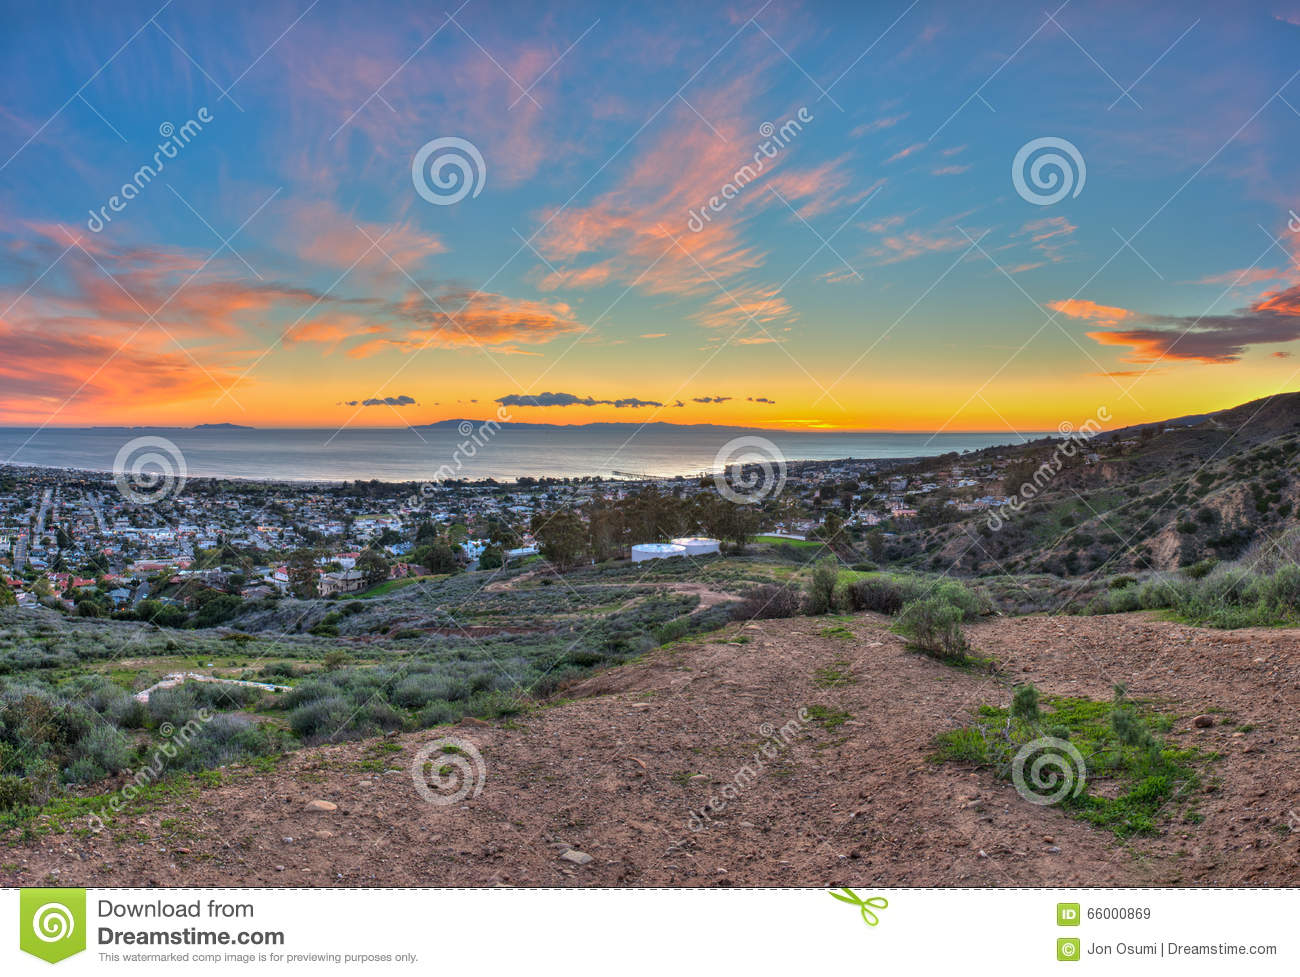 8cb9b3d38 Last Island Sunset Over City Of Ventura Stock Image - Image of ...